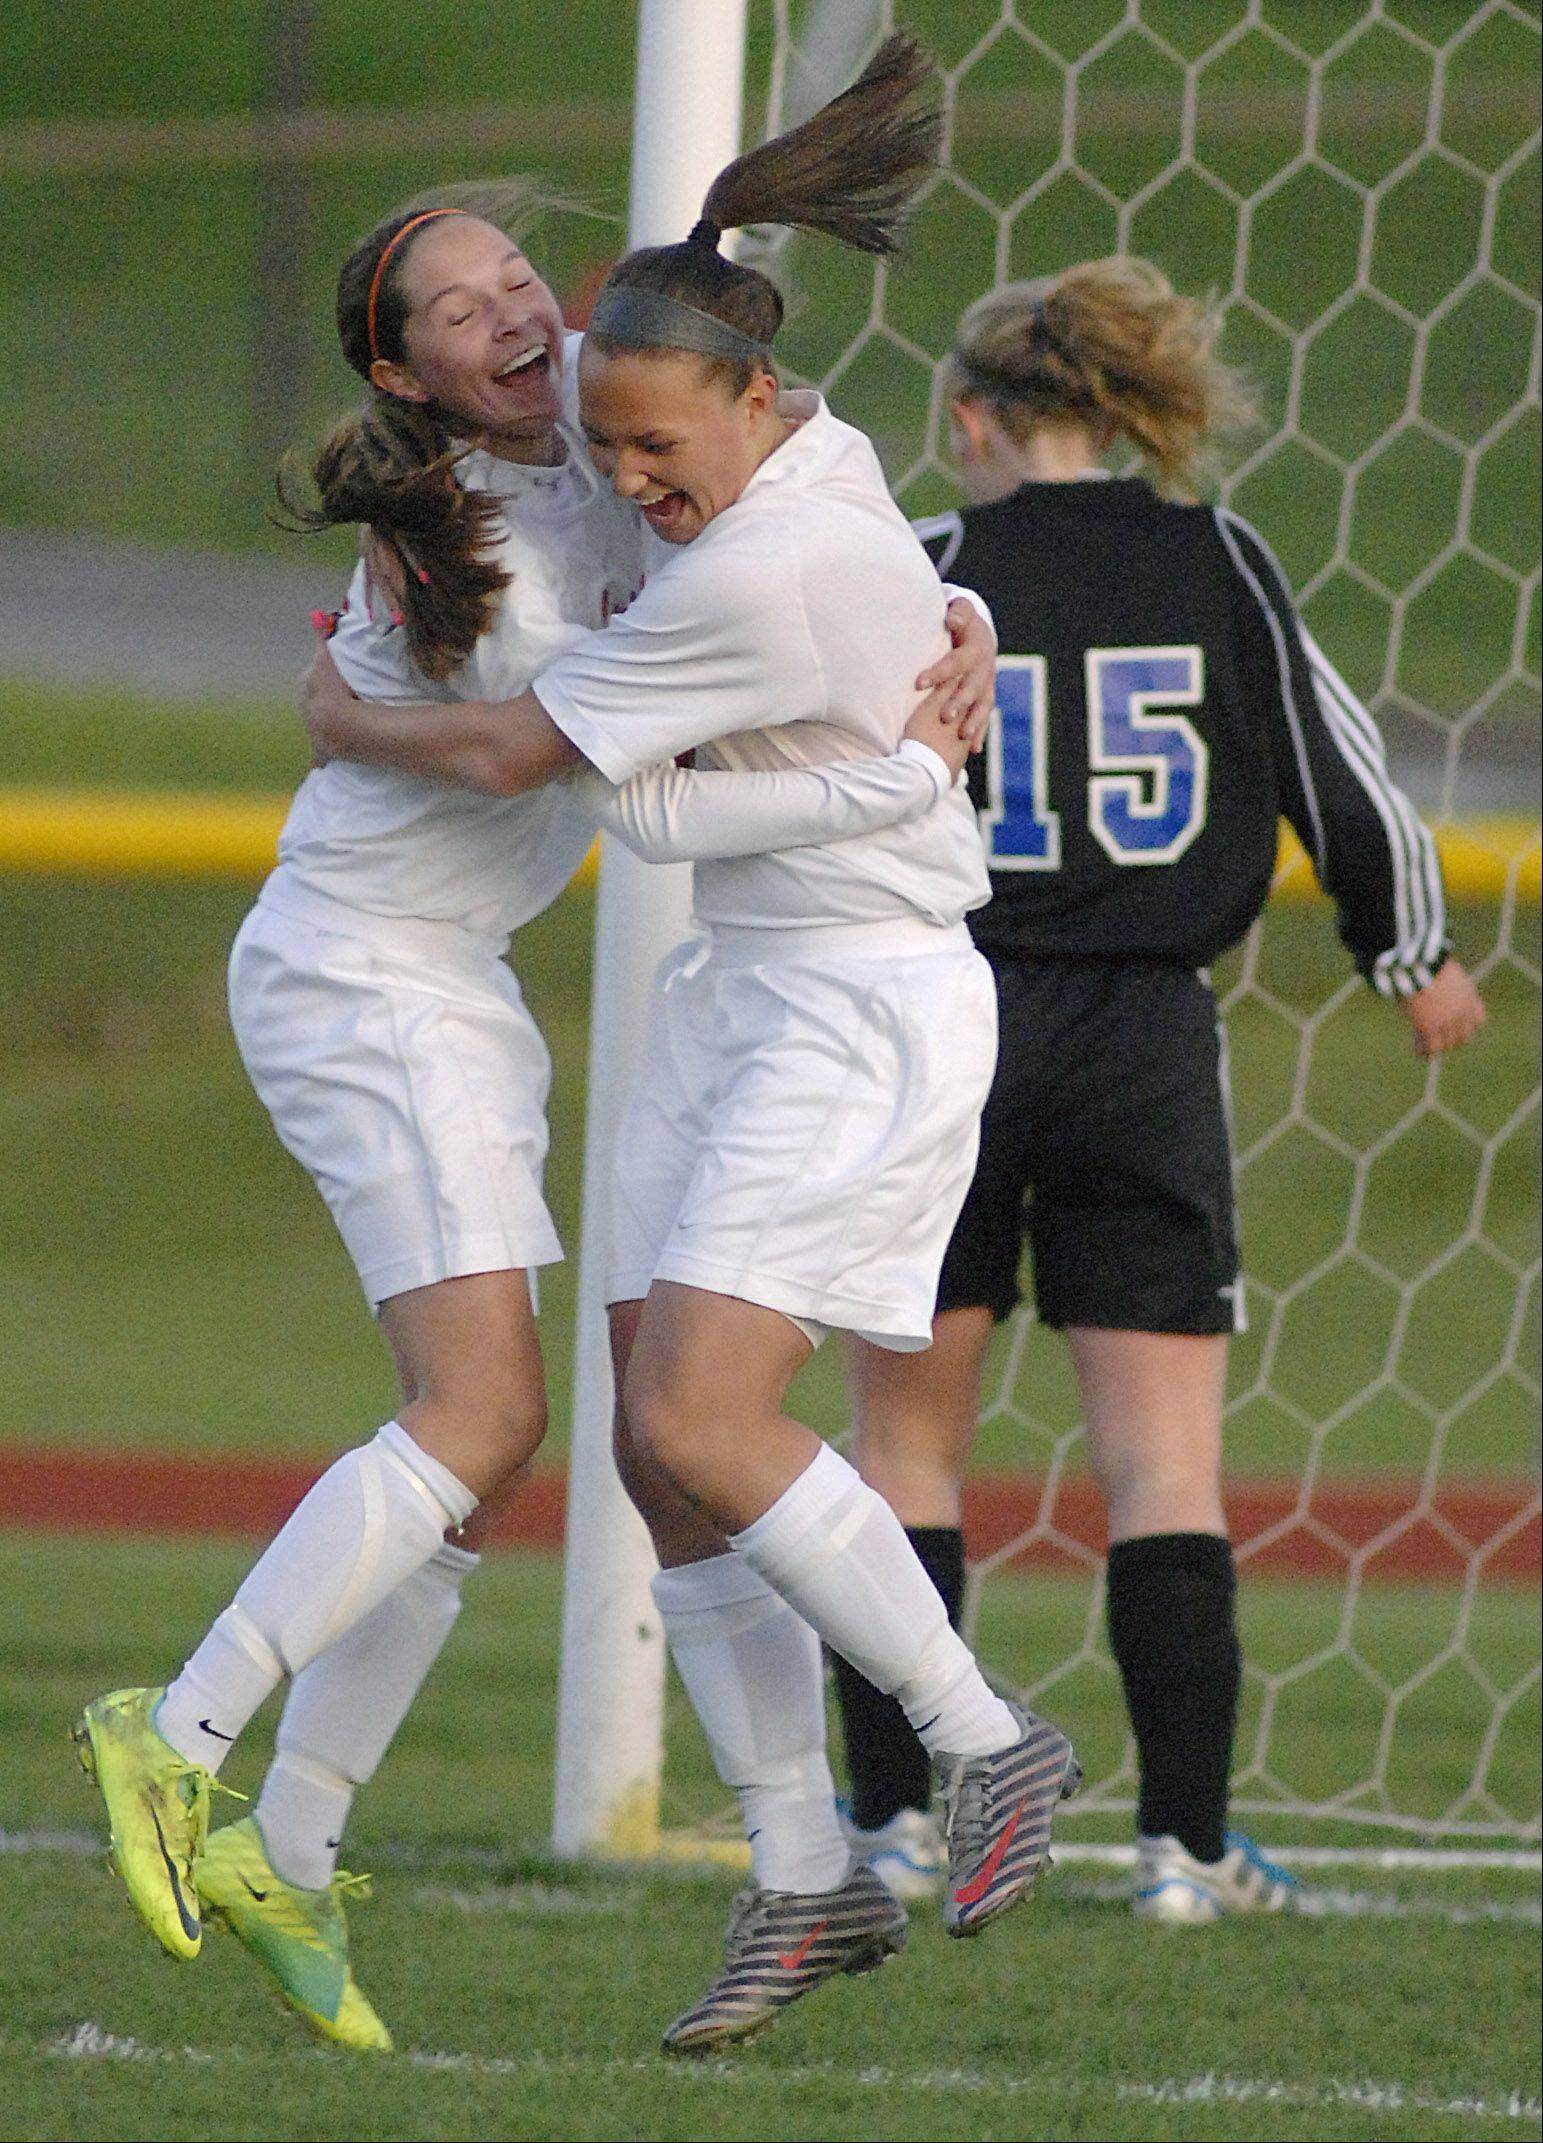 St. Charles East's Darcy Cunningham, left, celebrates her goal with teammate Carly Pottle in the first half on Wednesday, April 4.